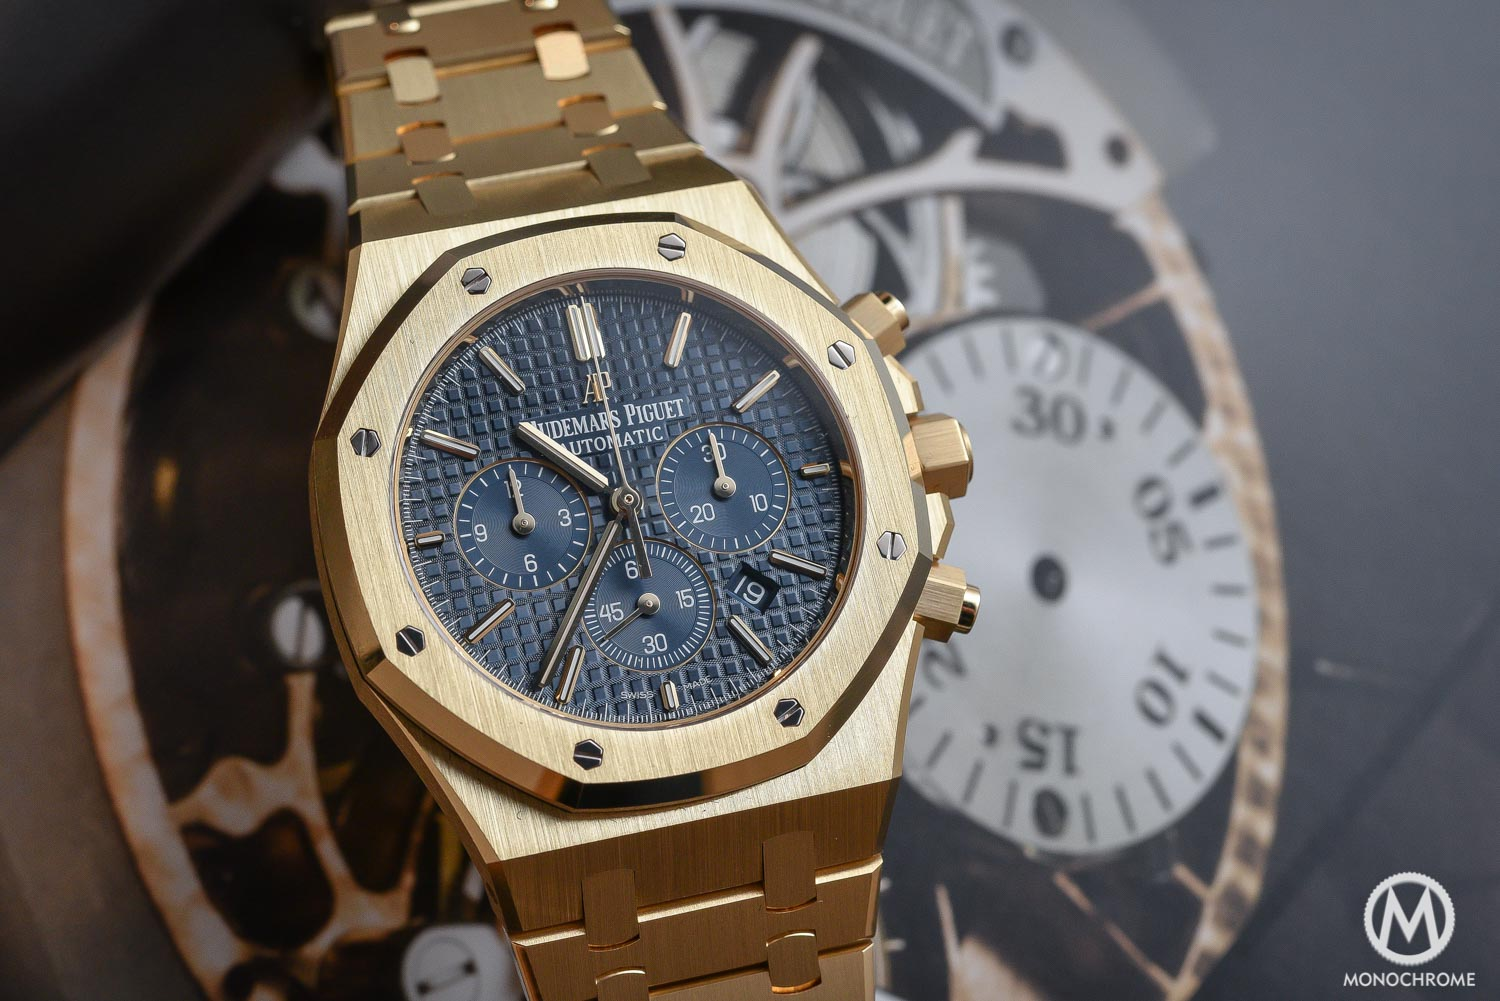 Audemars Piguet Royal Oak Chronograph 26320 yellow gold blue dial - SIHH 2016